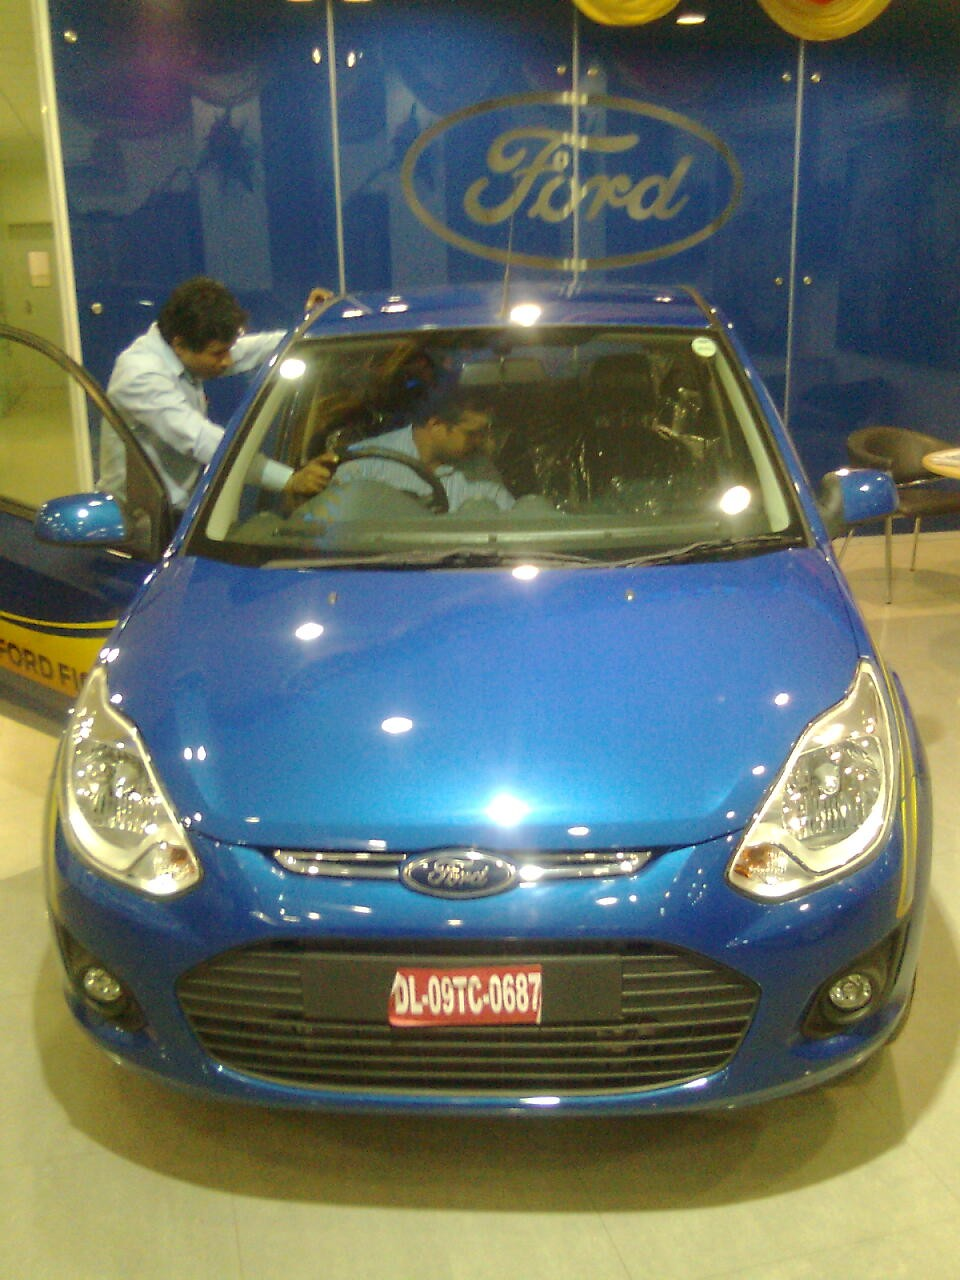 New Ford Figo Images - Exteriors, Interiors, Front and Rear